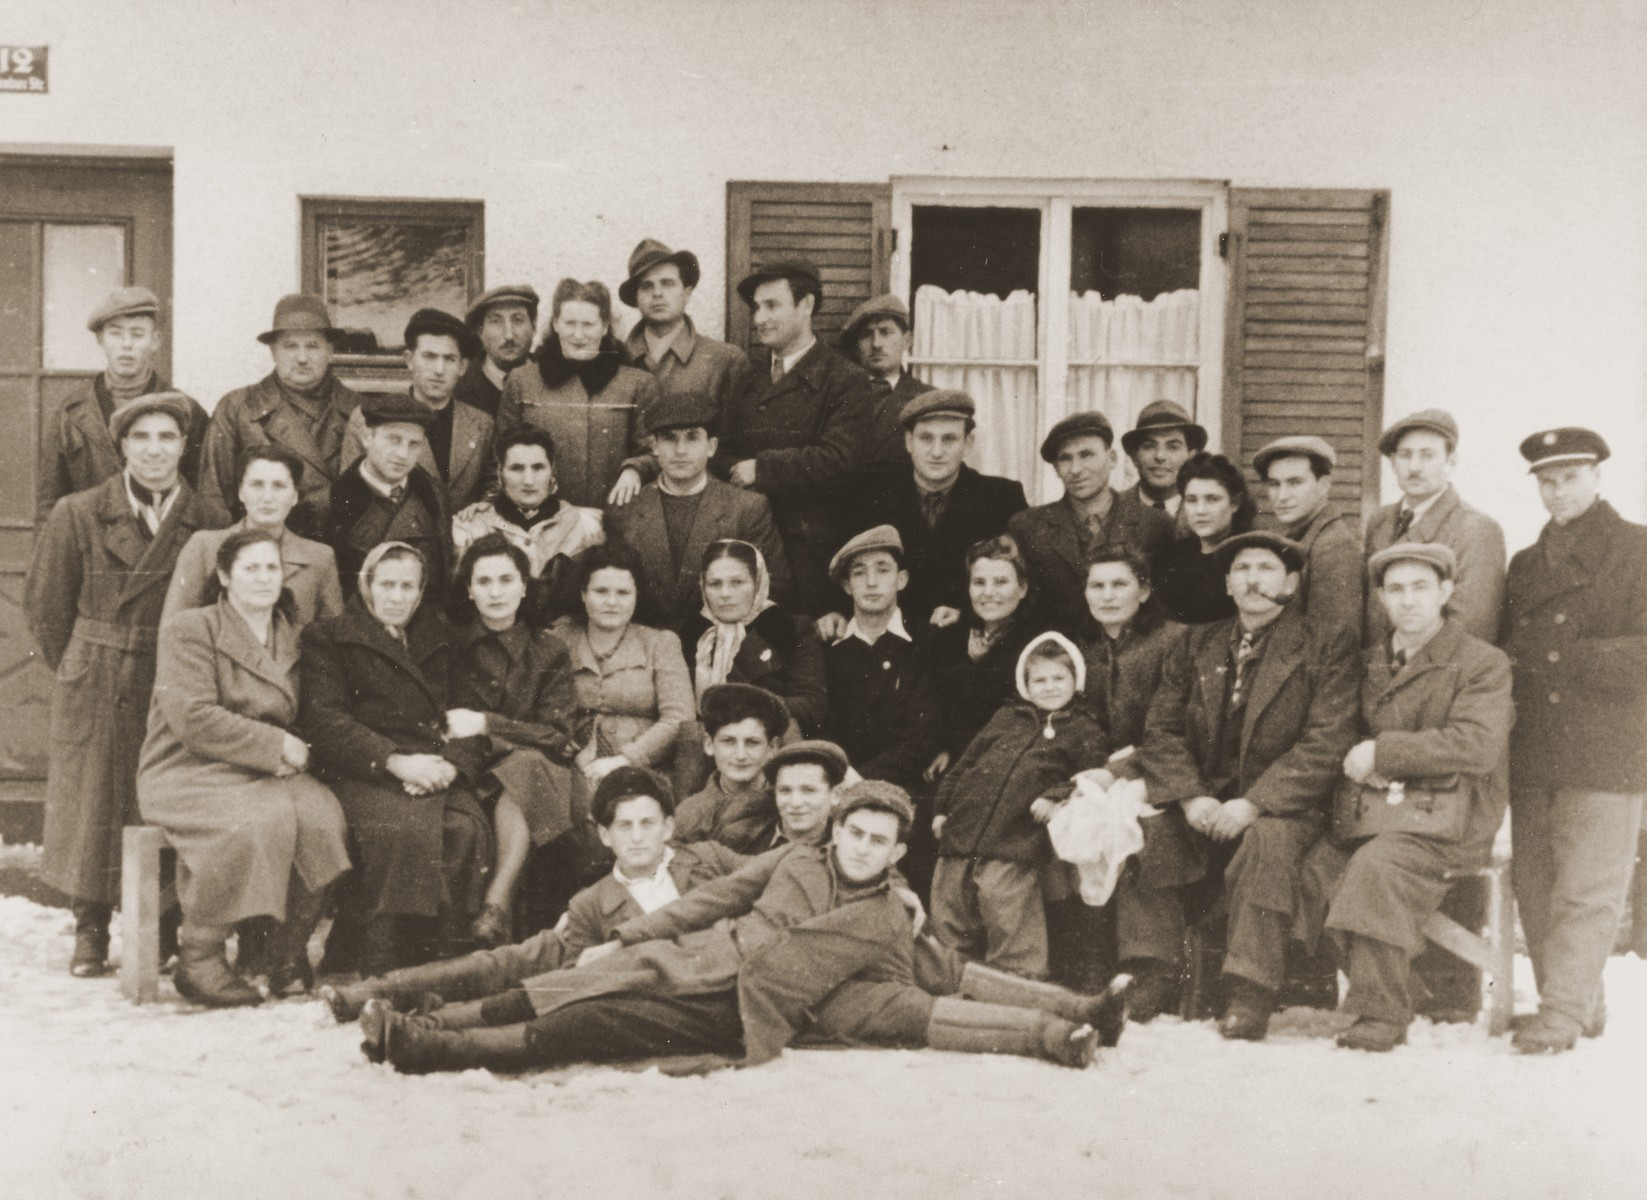 Group portrait of former Bielski partisans from Nowogrodek taken in the Foehrenwald displaced persons camp.  Idel Kagan is in the center of the pyramid in the front.  Anna (Hendel Duszkin) is seated in the front row, fourth women from the left.  Chaya Bielski is seated third from the left.  Her mother is to her left.  Abramele Intersky is standing second from left.  Taibel nee Bielski is seated third from the right.  Joseph Skakun is standing in the center.  Ida (Chayka) Zelwin (Zelvianski) in the last row fifth from the left with the coat with the fur collar. Her husband, Sam Zelwin(Zelvianski) is the last person on the right in the last row.